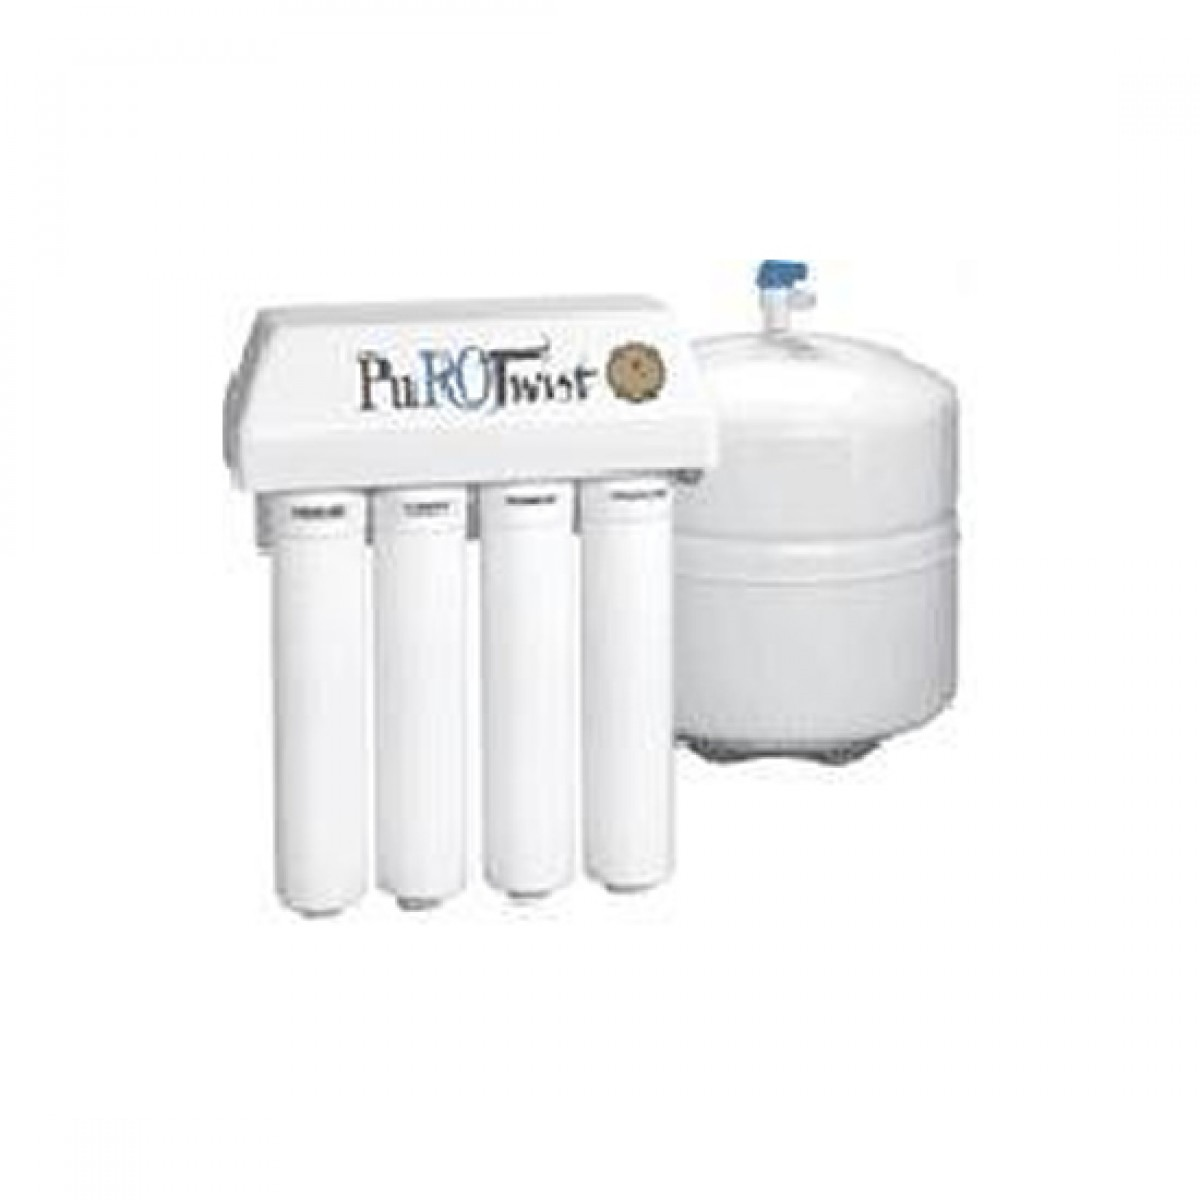 Purotwist 4000 Reverse Osmosis Water Filtration System